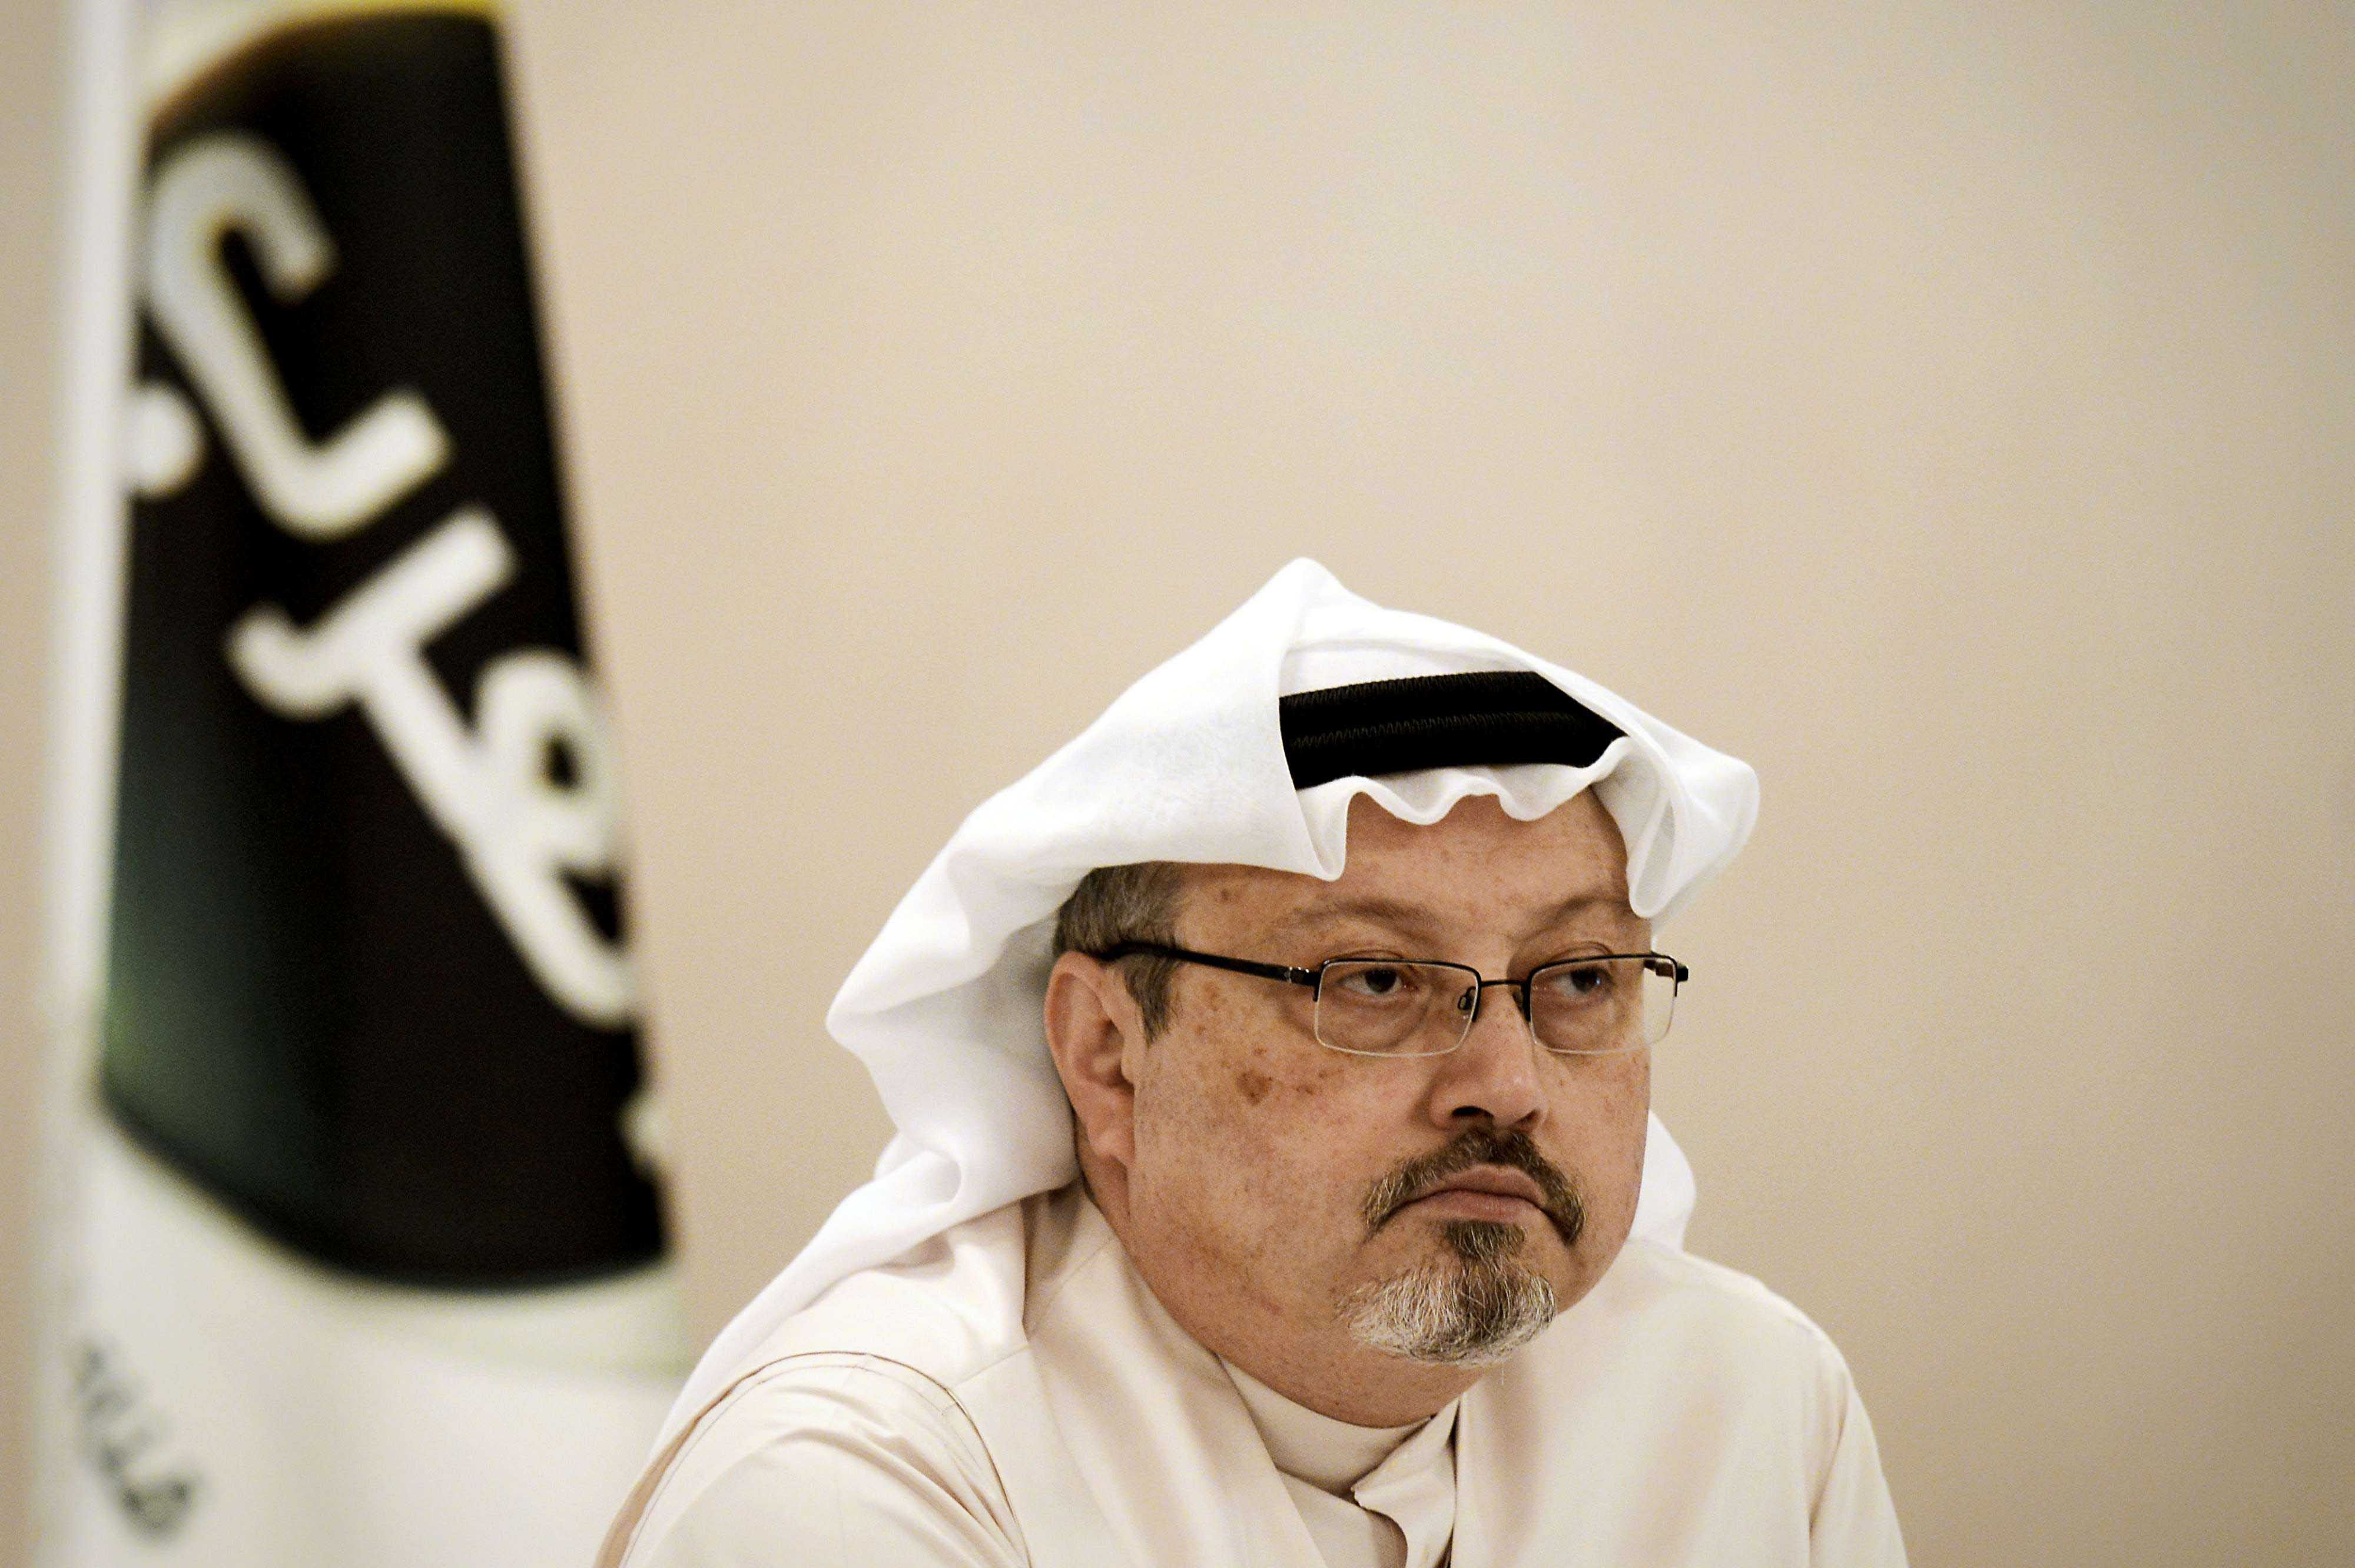 The remains of Khashoggi's body have not been found.